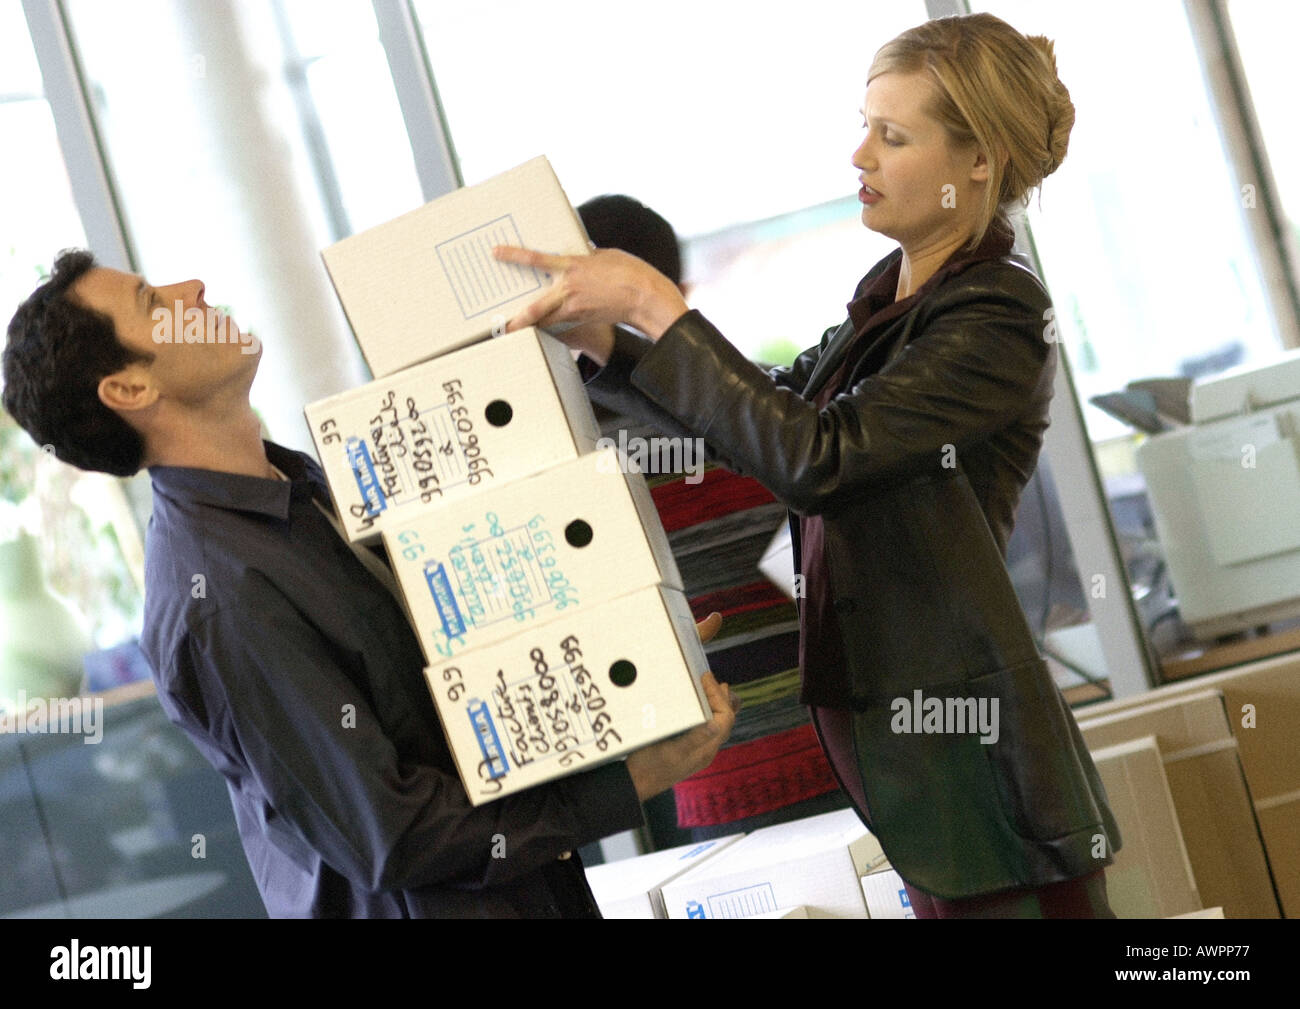 Woman piling boxes up in man's arms, side view - Stock Image